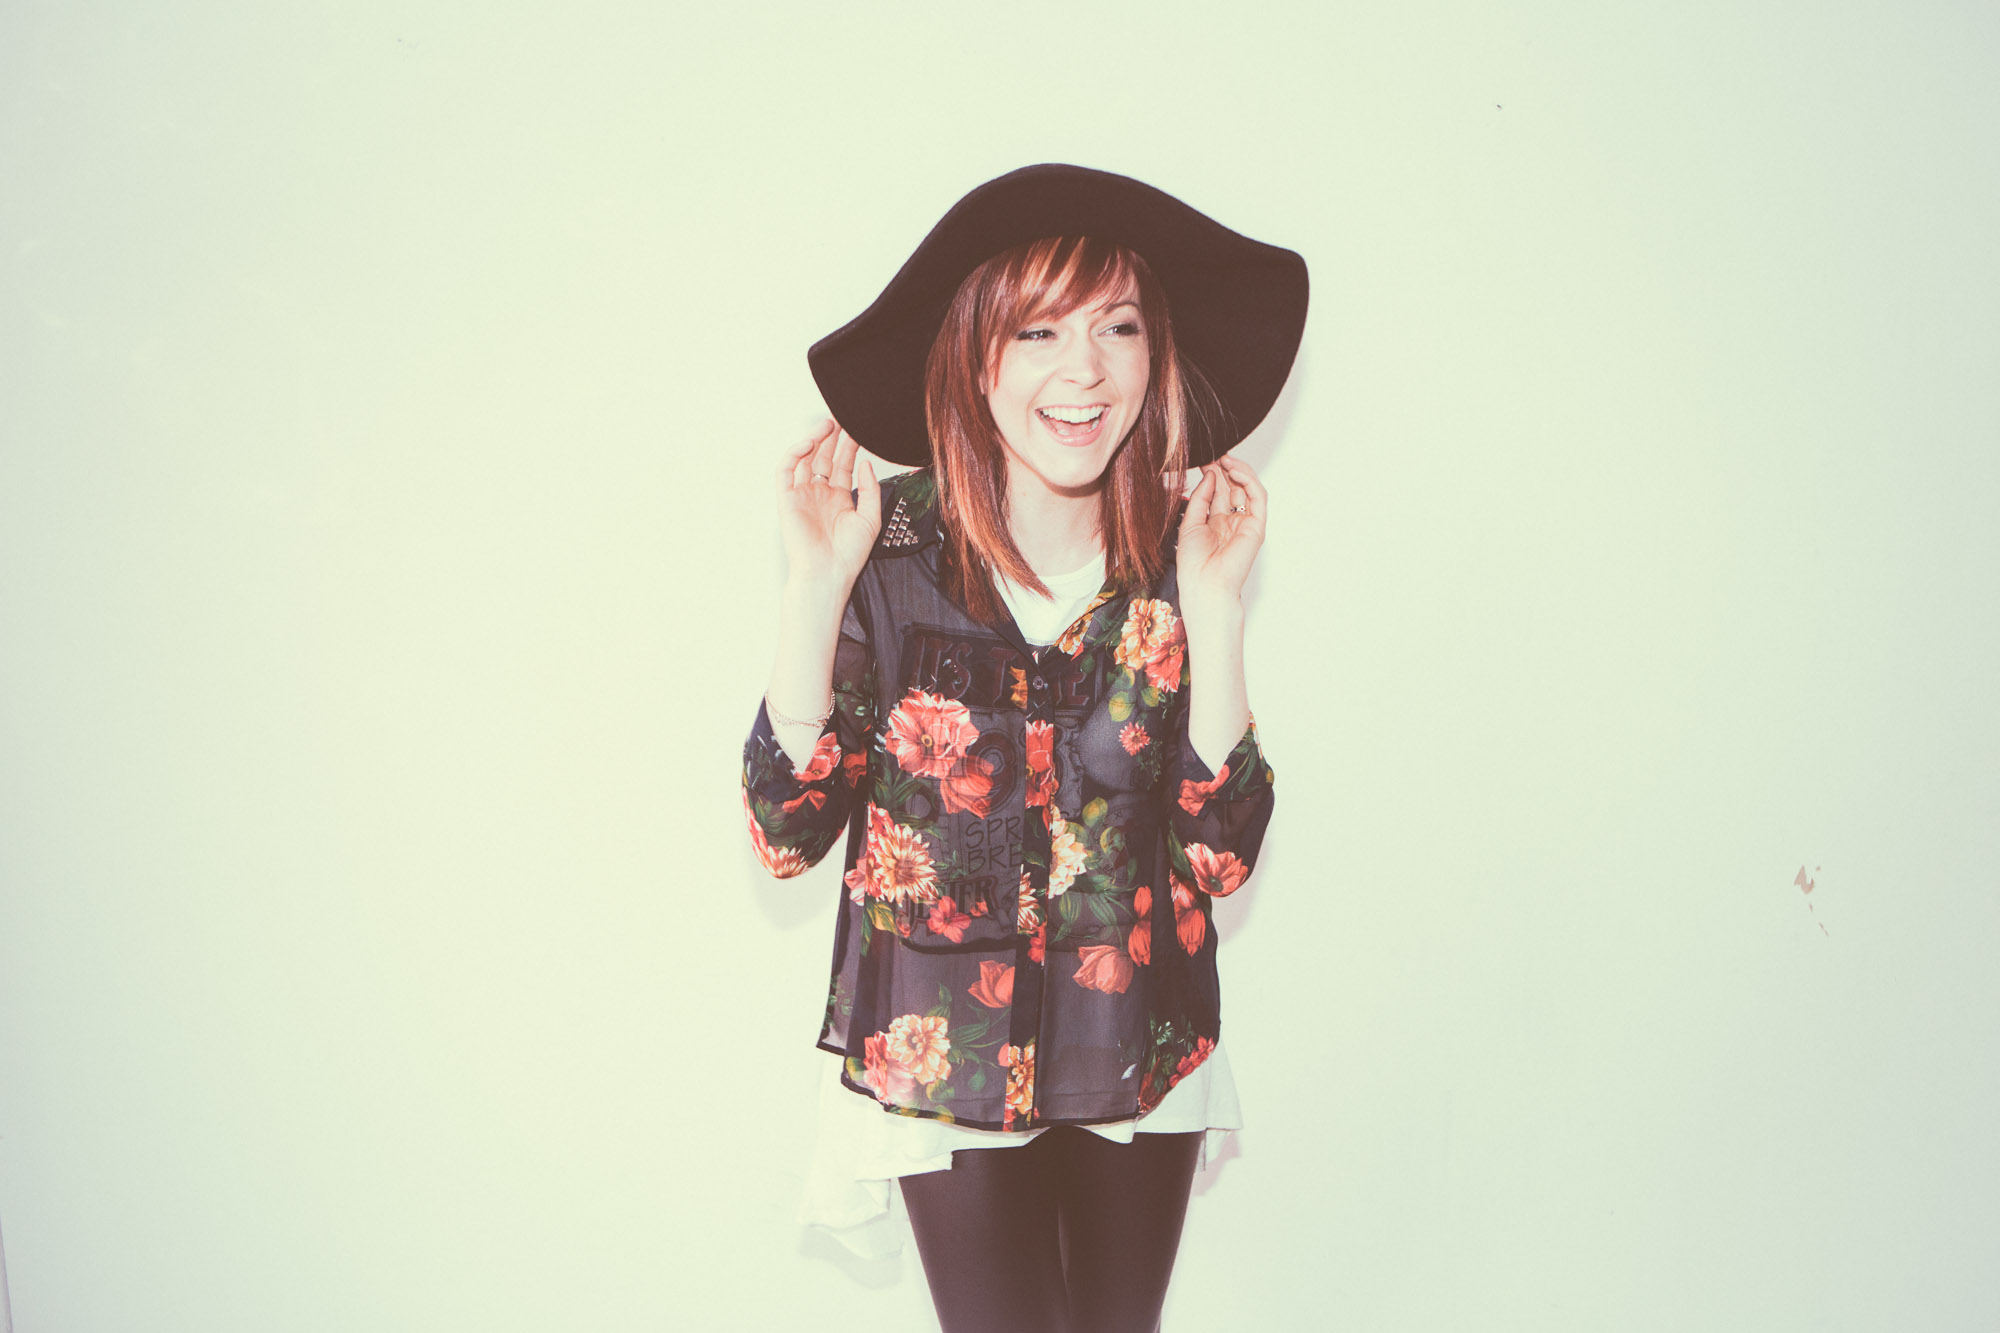 Win tickets and meet & greet passes to see Lindsey Stirling live!